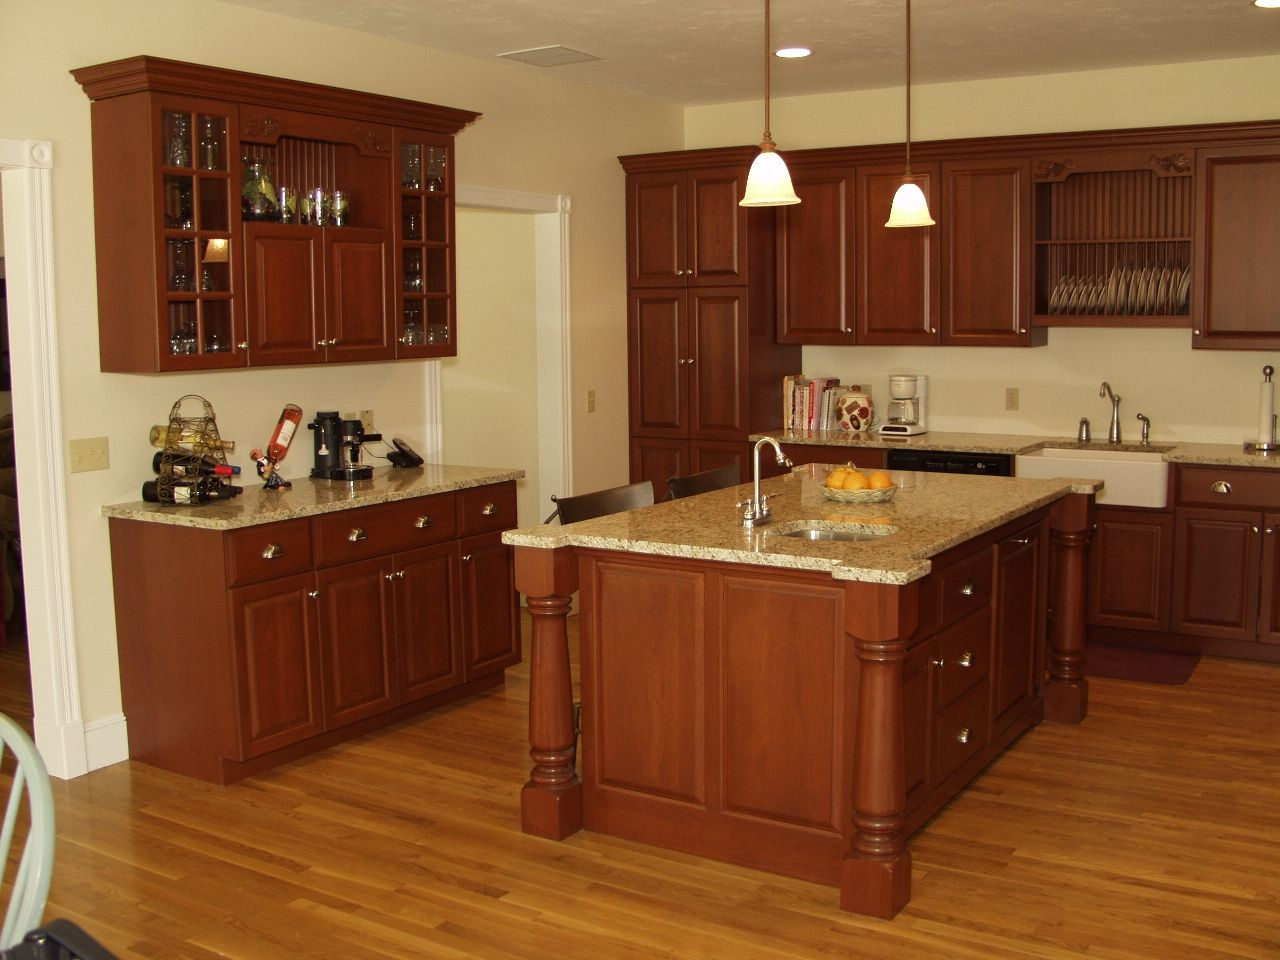 Kitchen Quartz Countertops With Oak Cabinets Cabinets With White Quartz Countertops Quartz Countertop With Cabinet